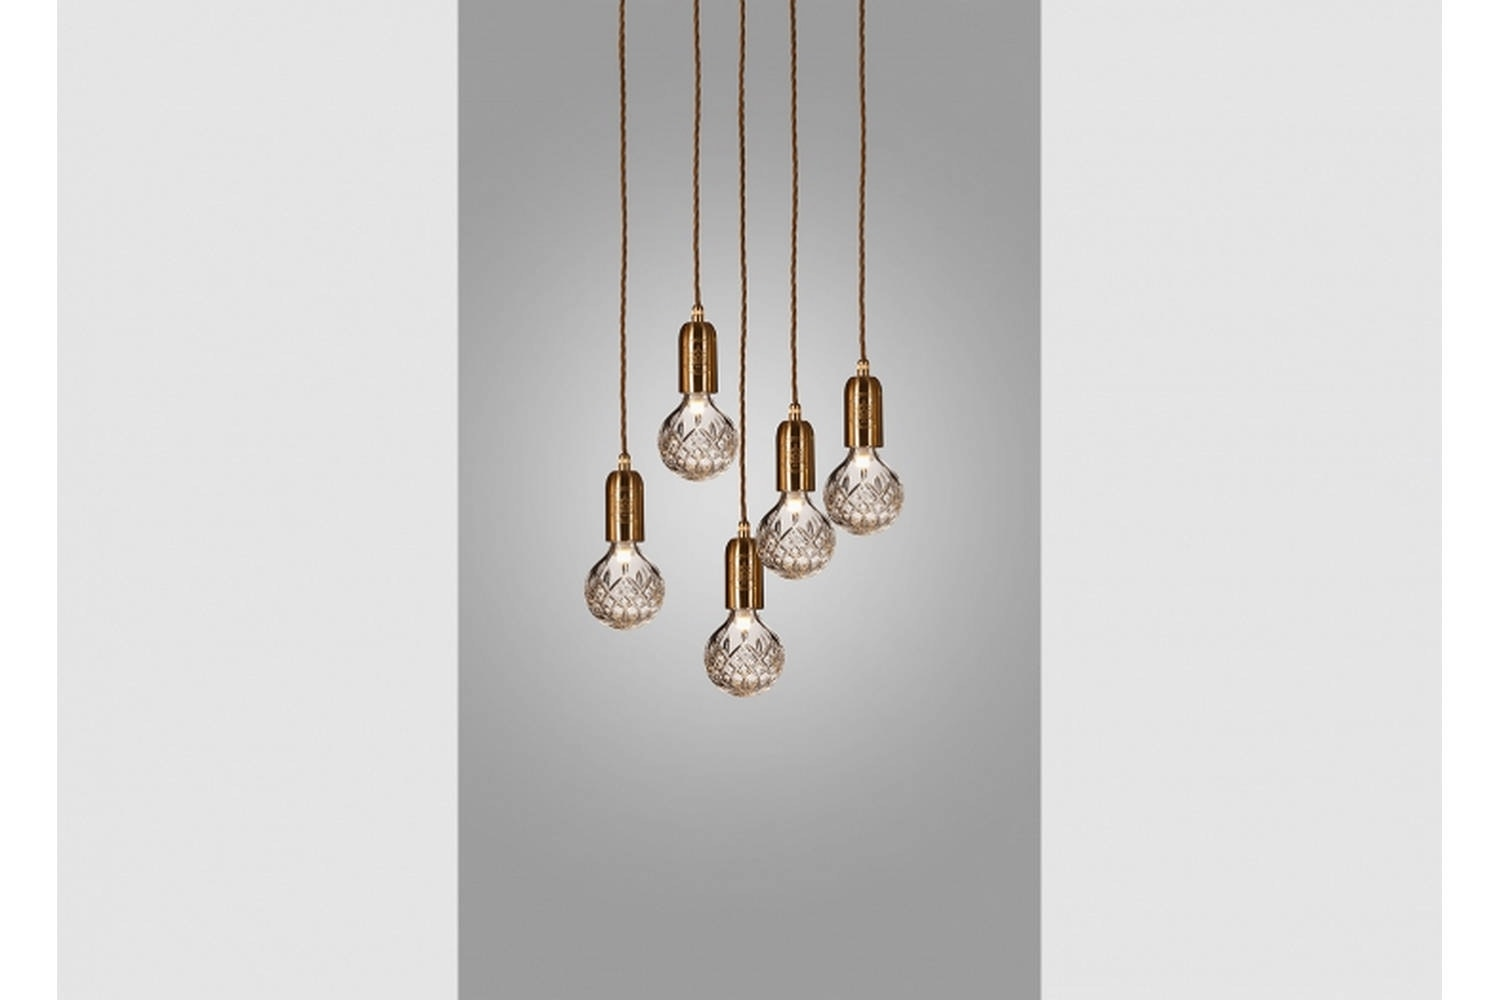 Clear Crystal Bulb Chandelier 5 Piece - Brushed Brass by Lee Broom